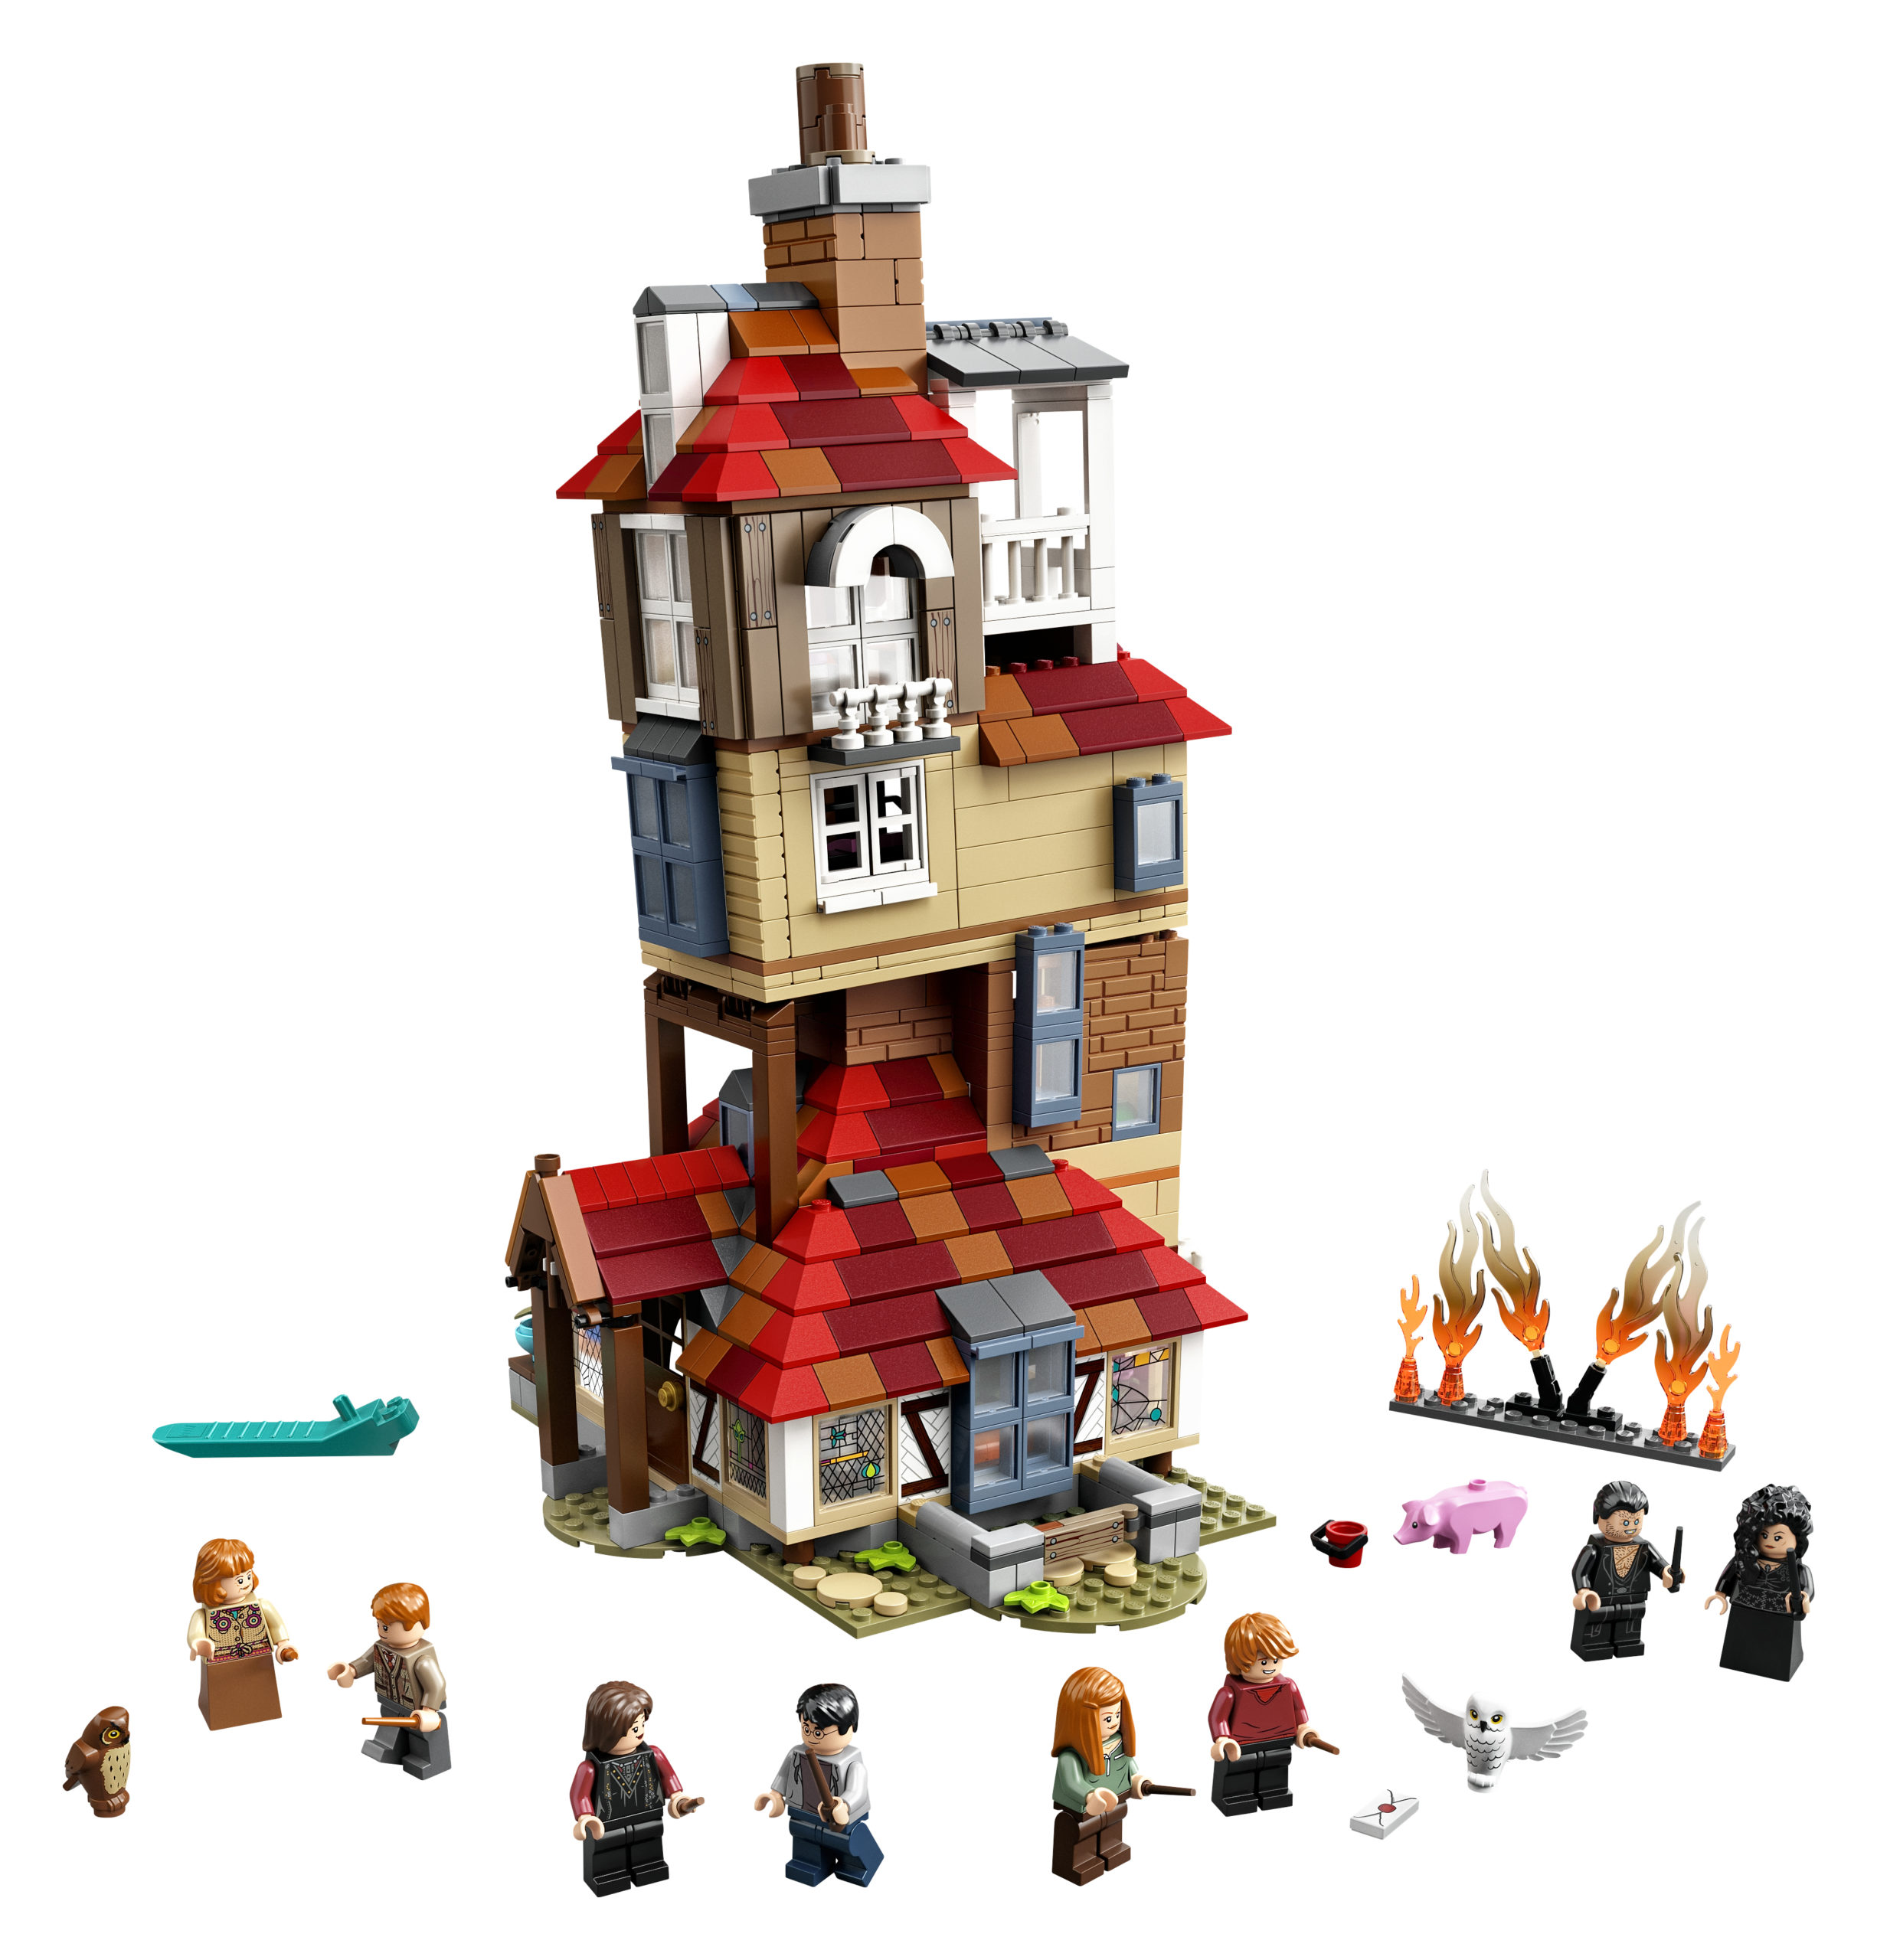 The 1,047-piece set includes Order of the Phoenix members and Death Eaters as the Burrow is attacked.